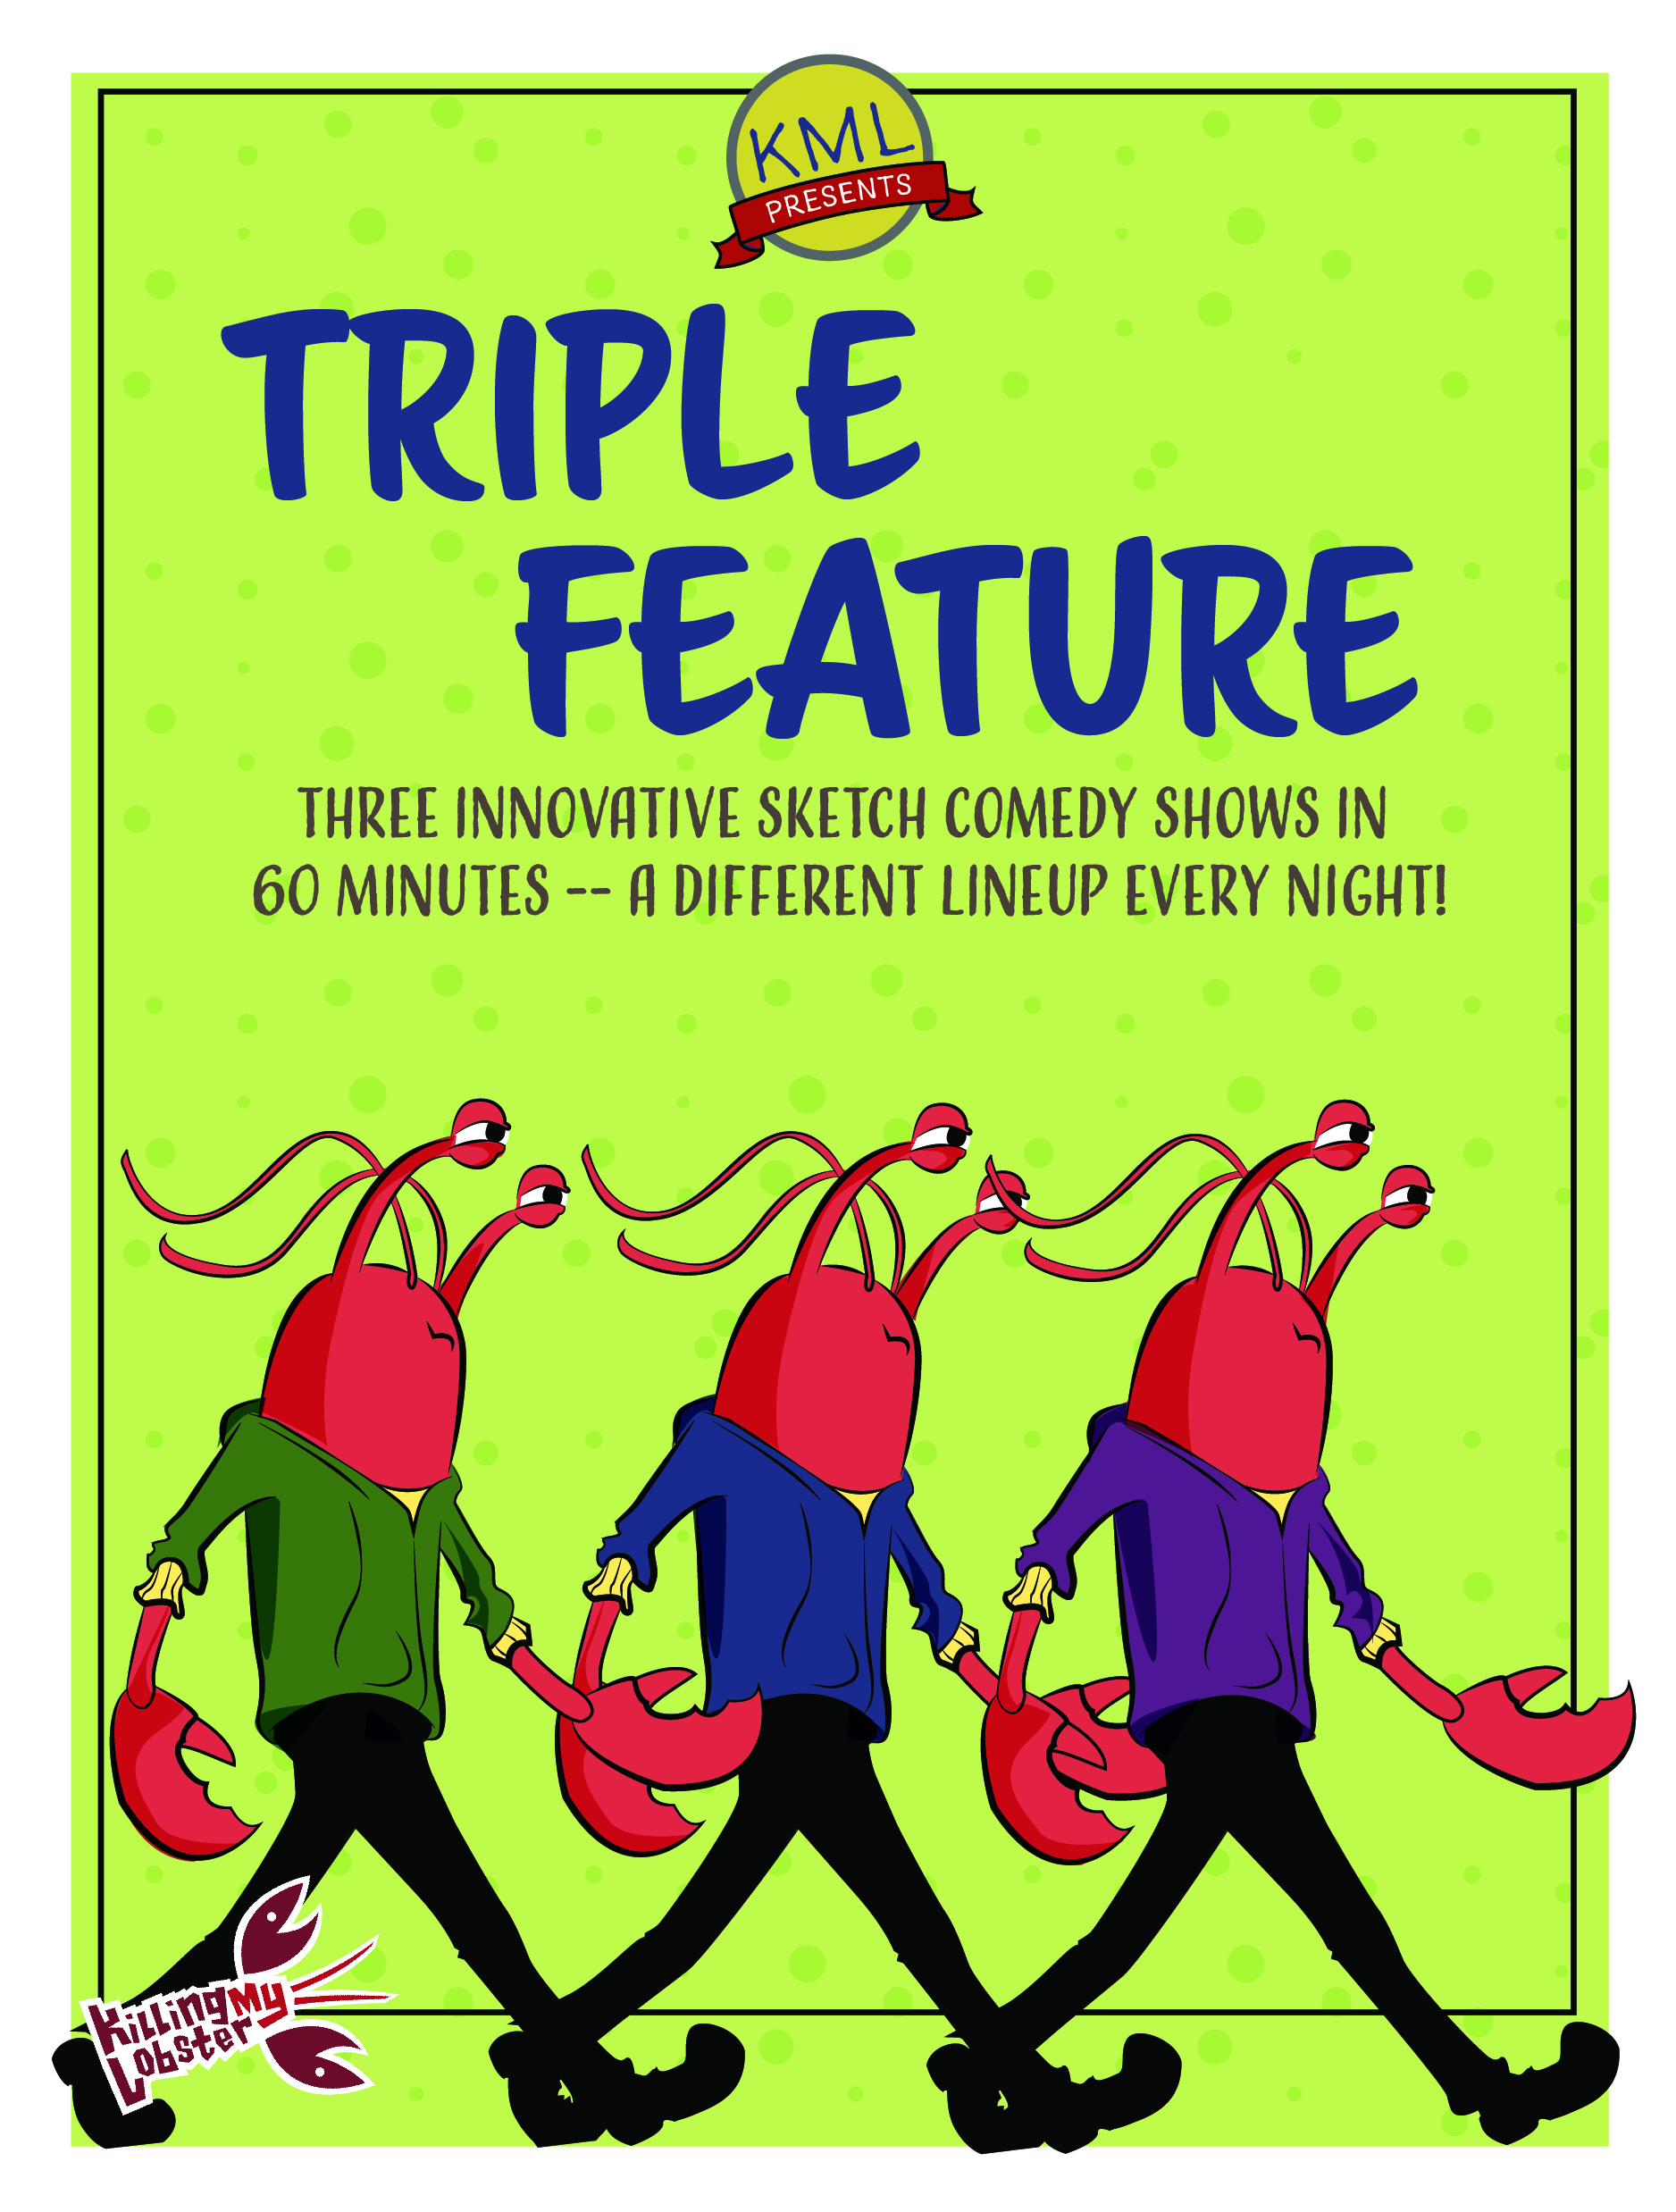 Triple_Feature_3_Sketch_Comedy_Show_In_San_Francisco.jpg